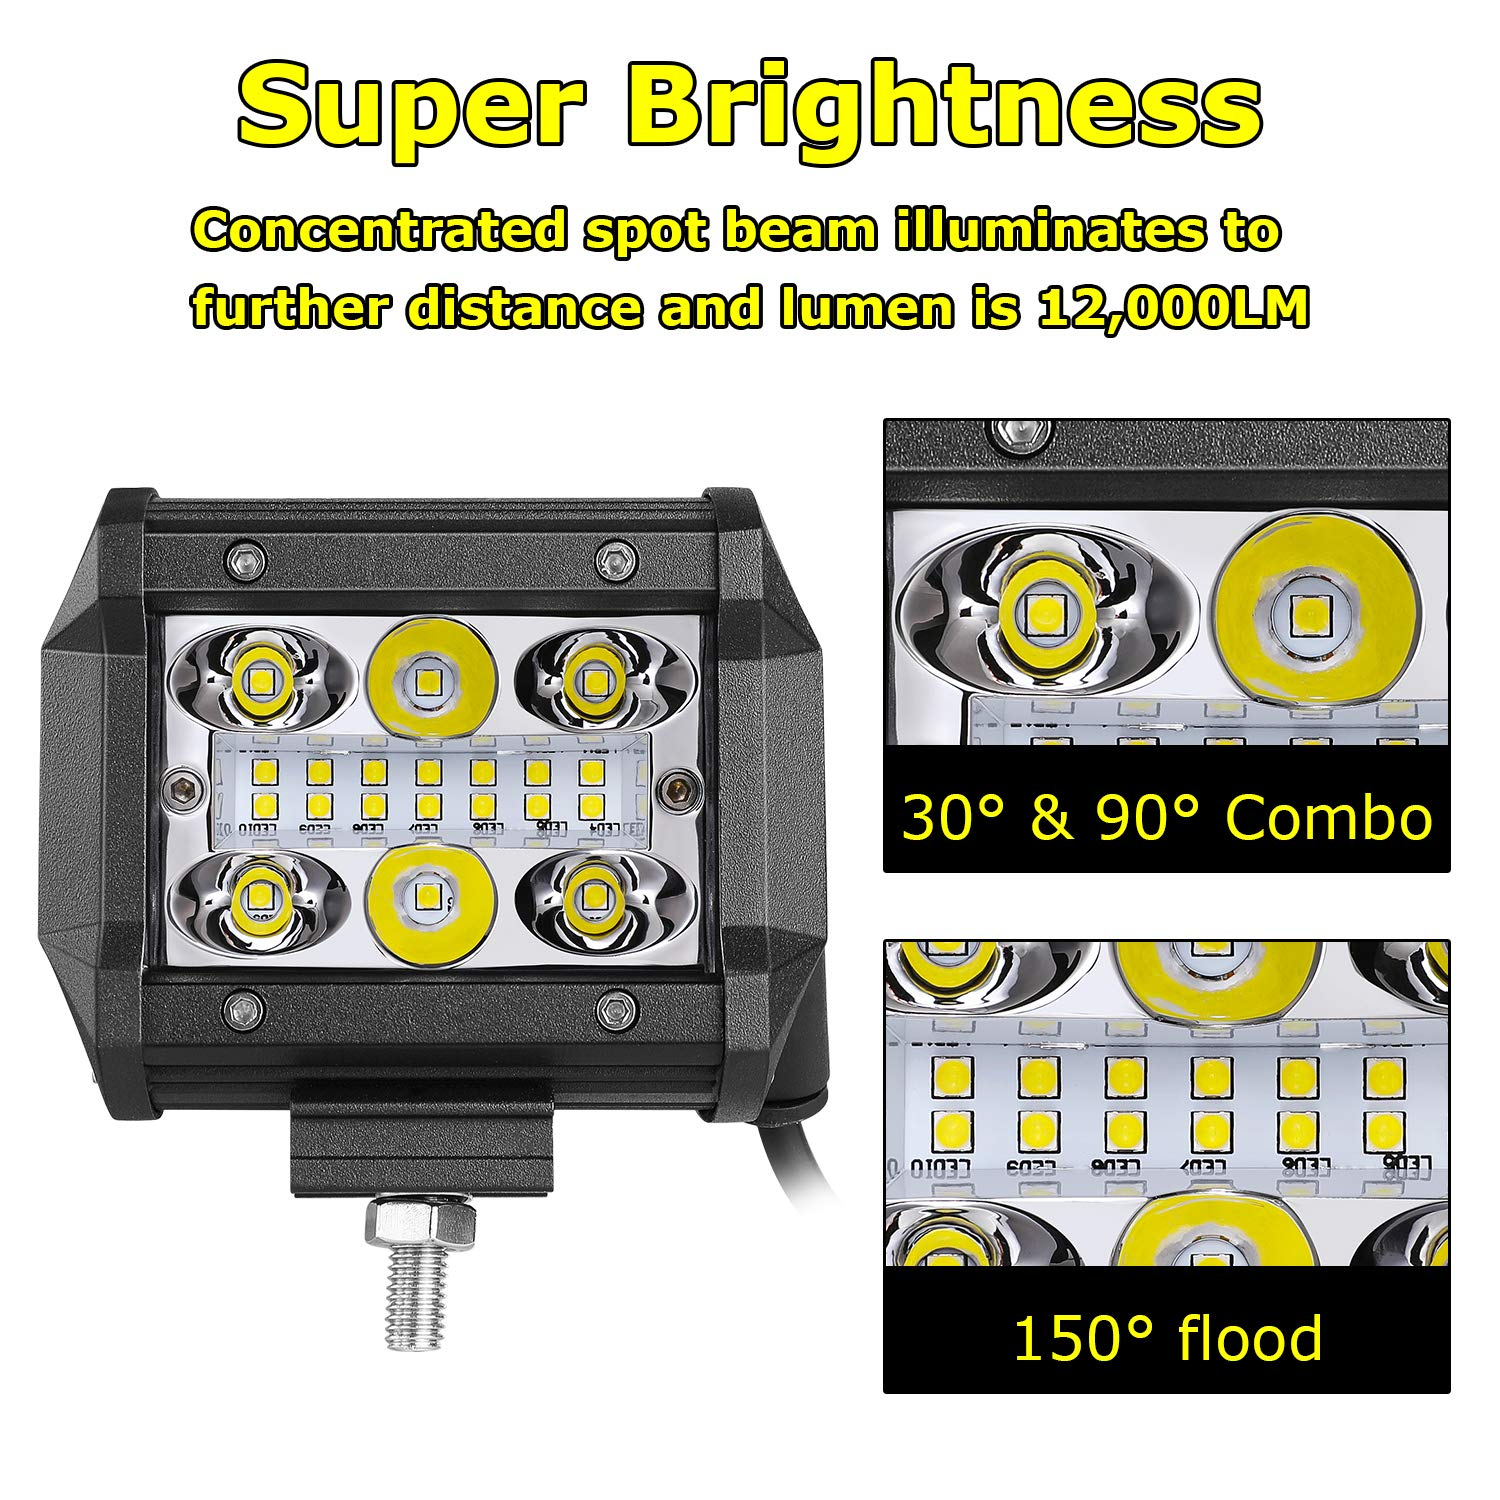 Yvoone-Auto LED Pods Light Bar 4 Inch 120w 12000lm Driving Fog Off Road Lights Triple Row Waterproof Spot Flood Combo Beam LED Cubes Lights For Pickup Truck Jeep ATV UTV SUV Boat,2 PACK